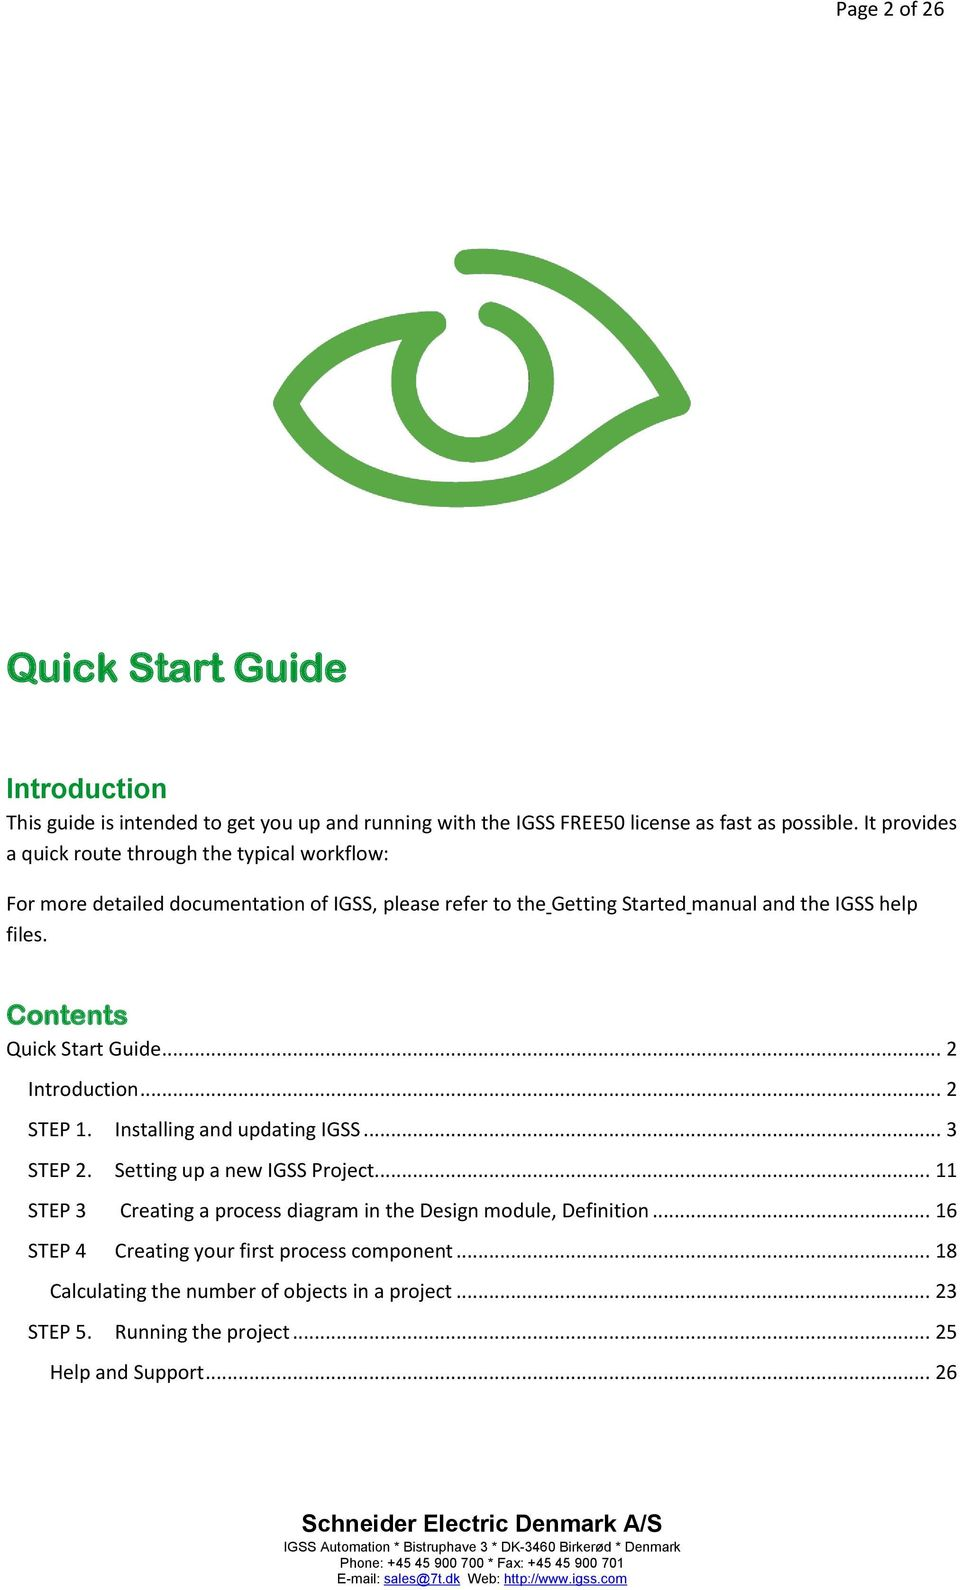 Contents Quick Start Guide... 2 Introduction... 2 STEP 1. Installing and updating IGSS... 3 STEP 2. Setting up a new IGSS Project.